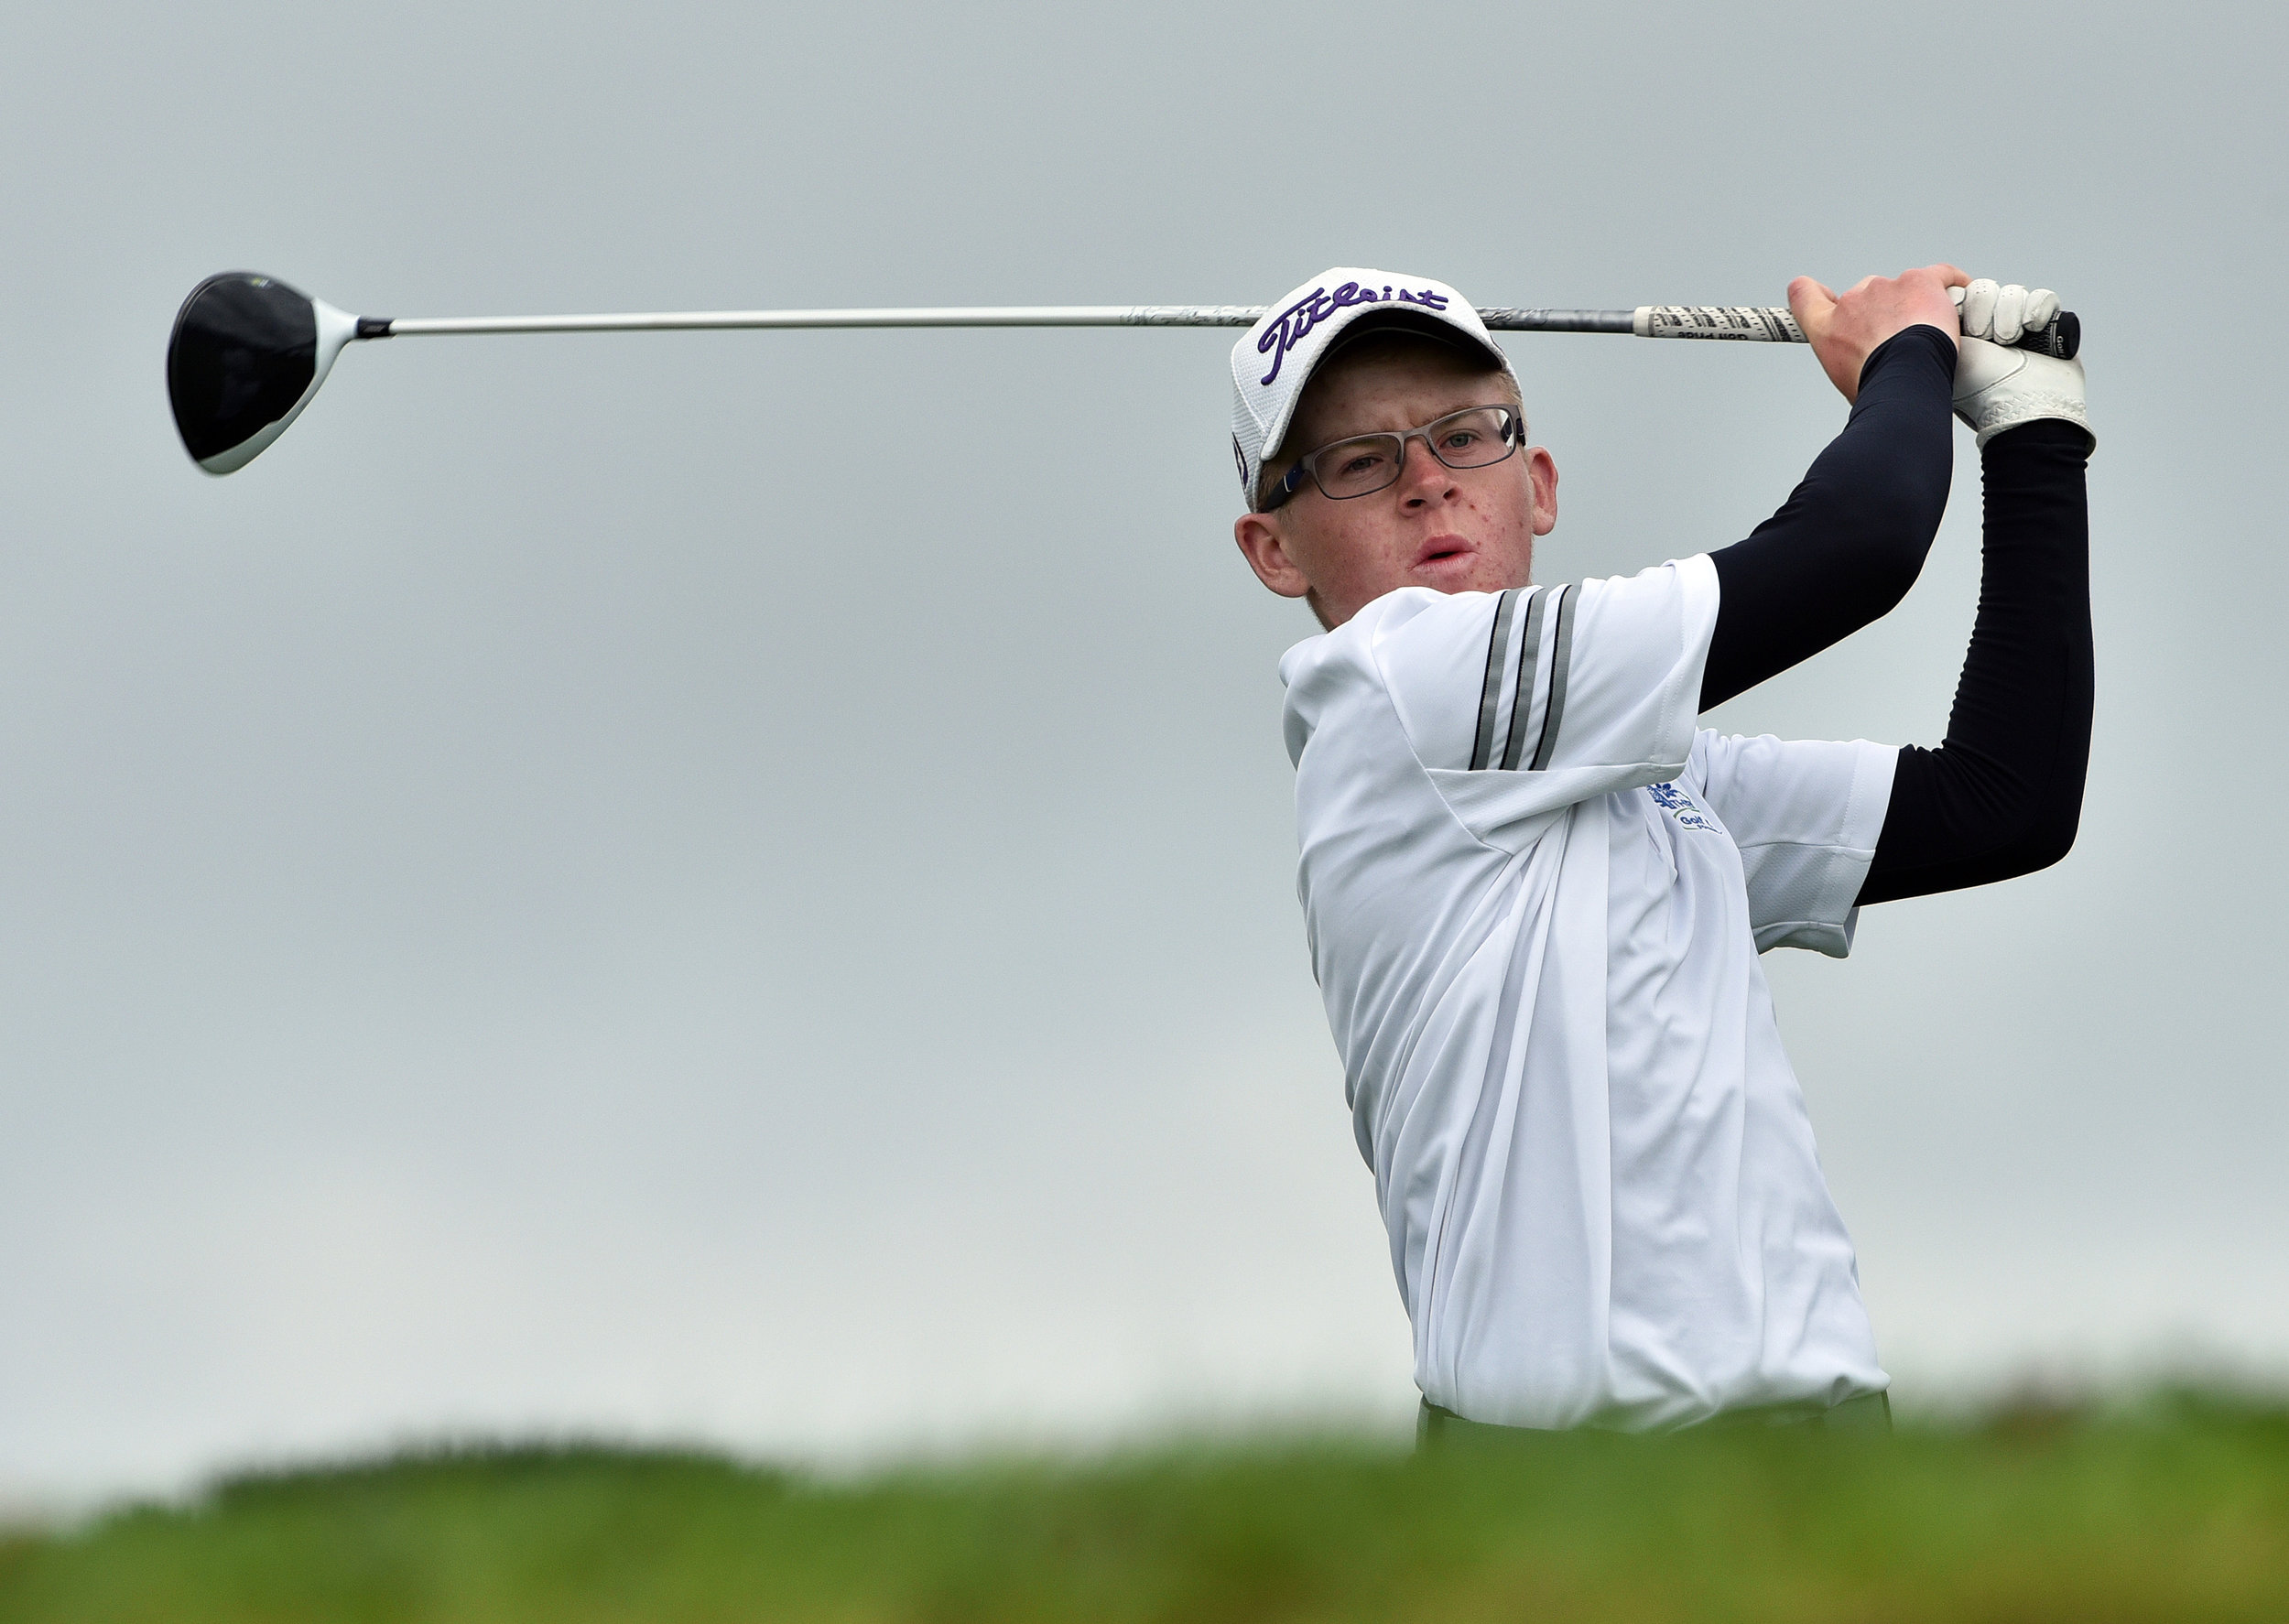 David Kitt (Athenry) driving at the 18th tee during the day four of the AIG Irish Amateur Close Championship at Galway Golf Club. Picture by  Pat Cashman